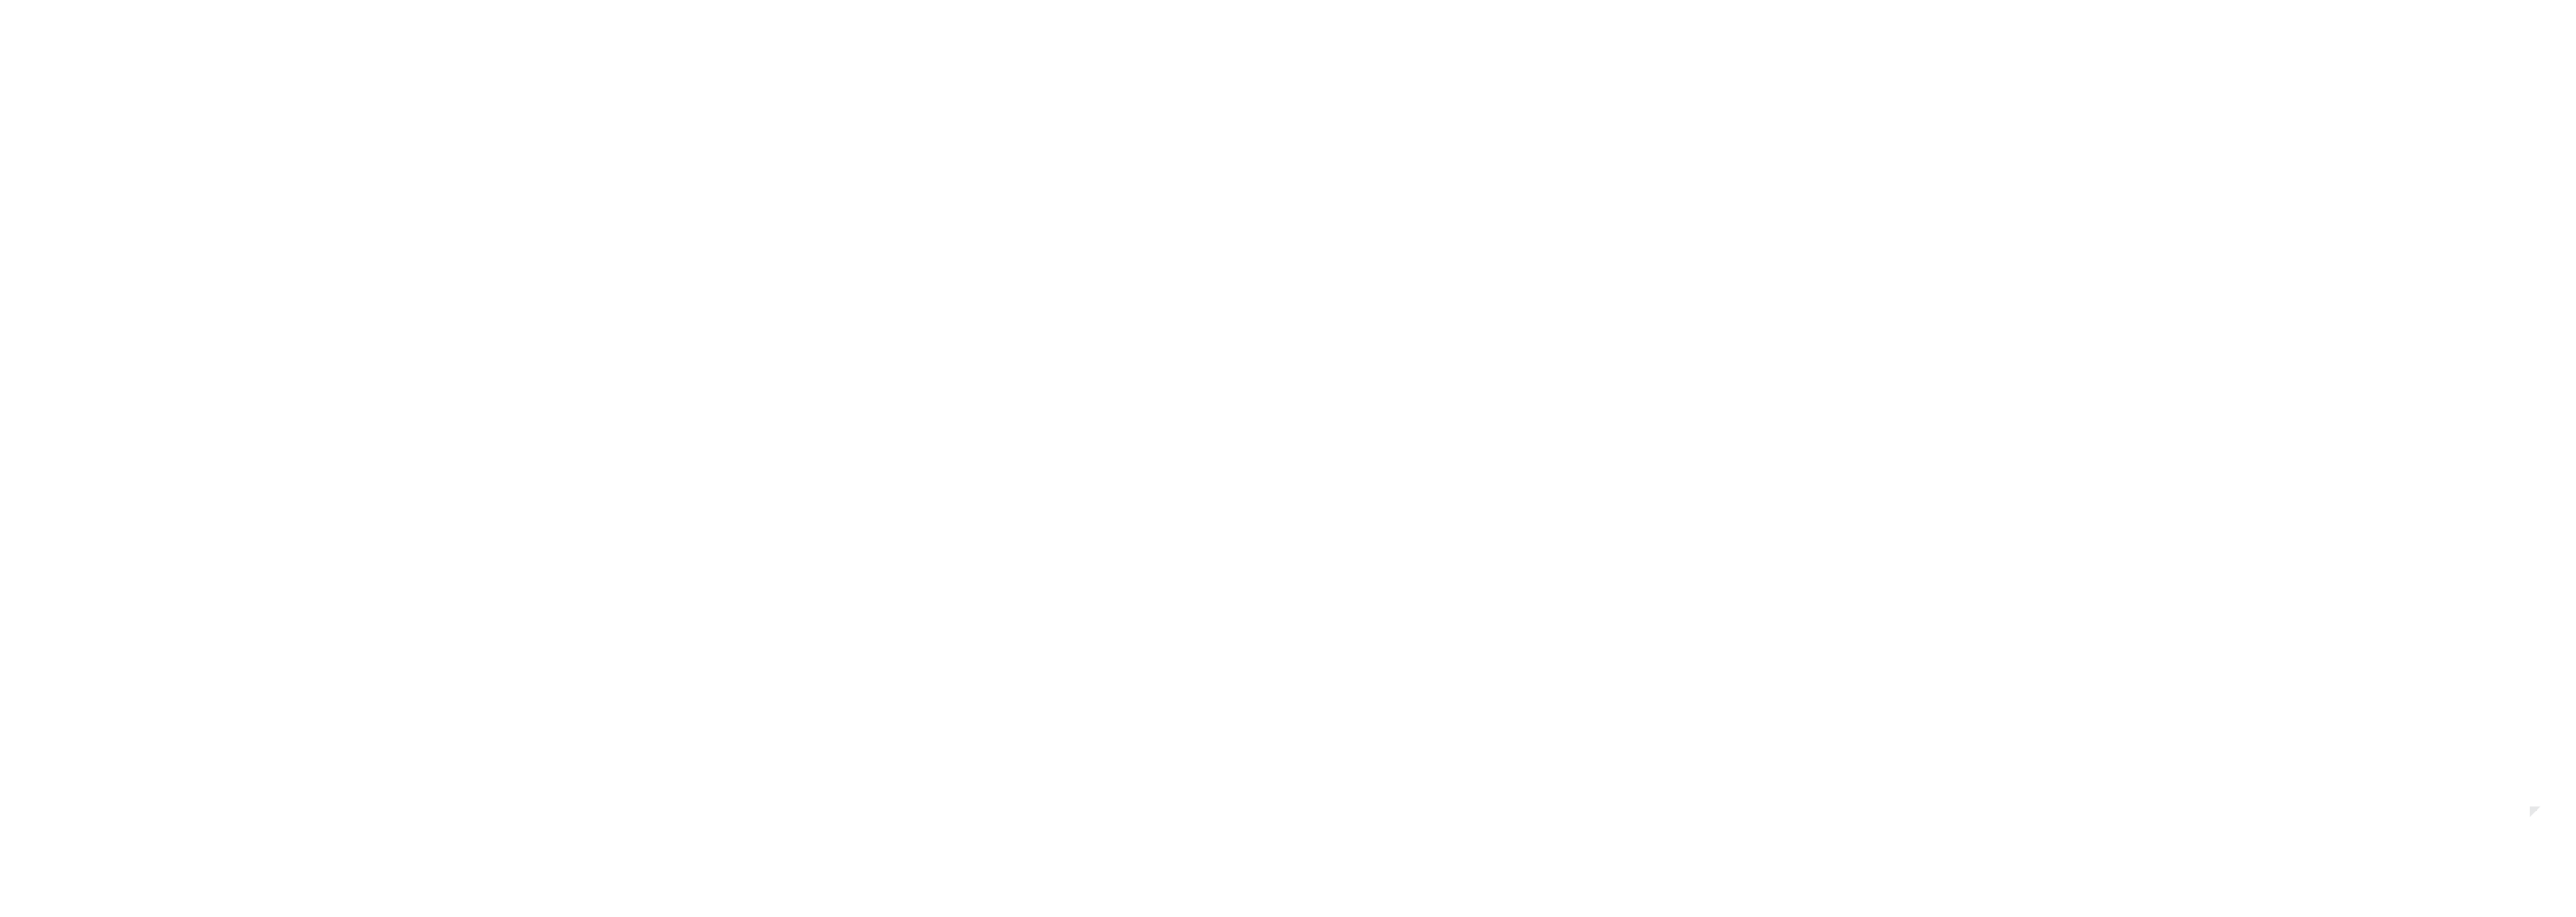 A New York Retail Innovation Week Evemt